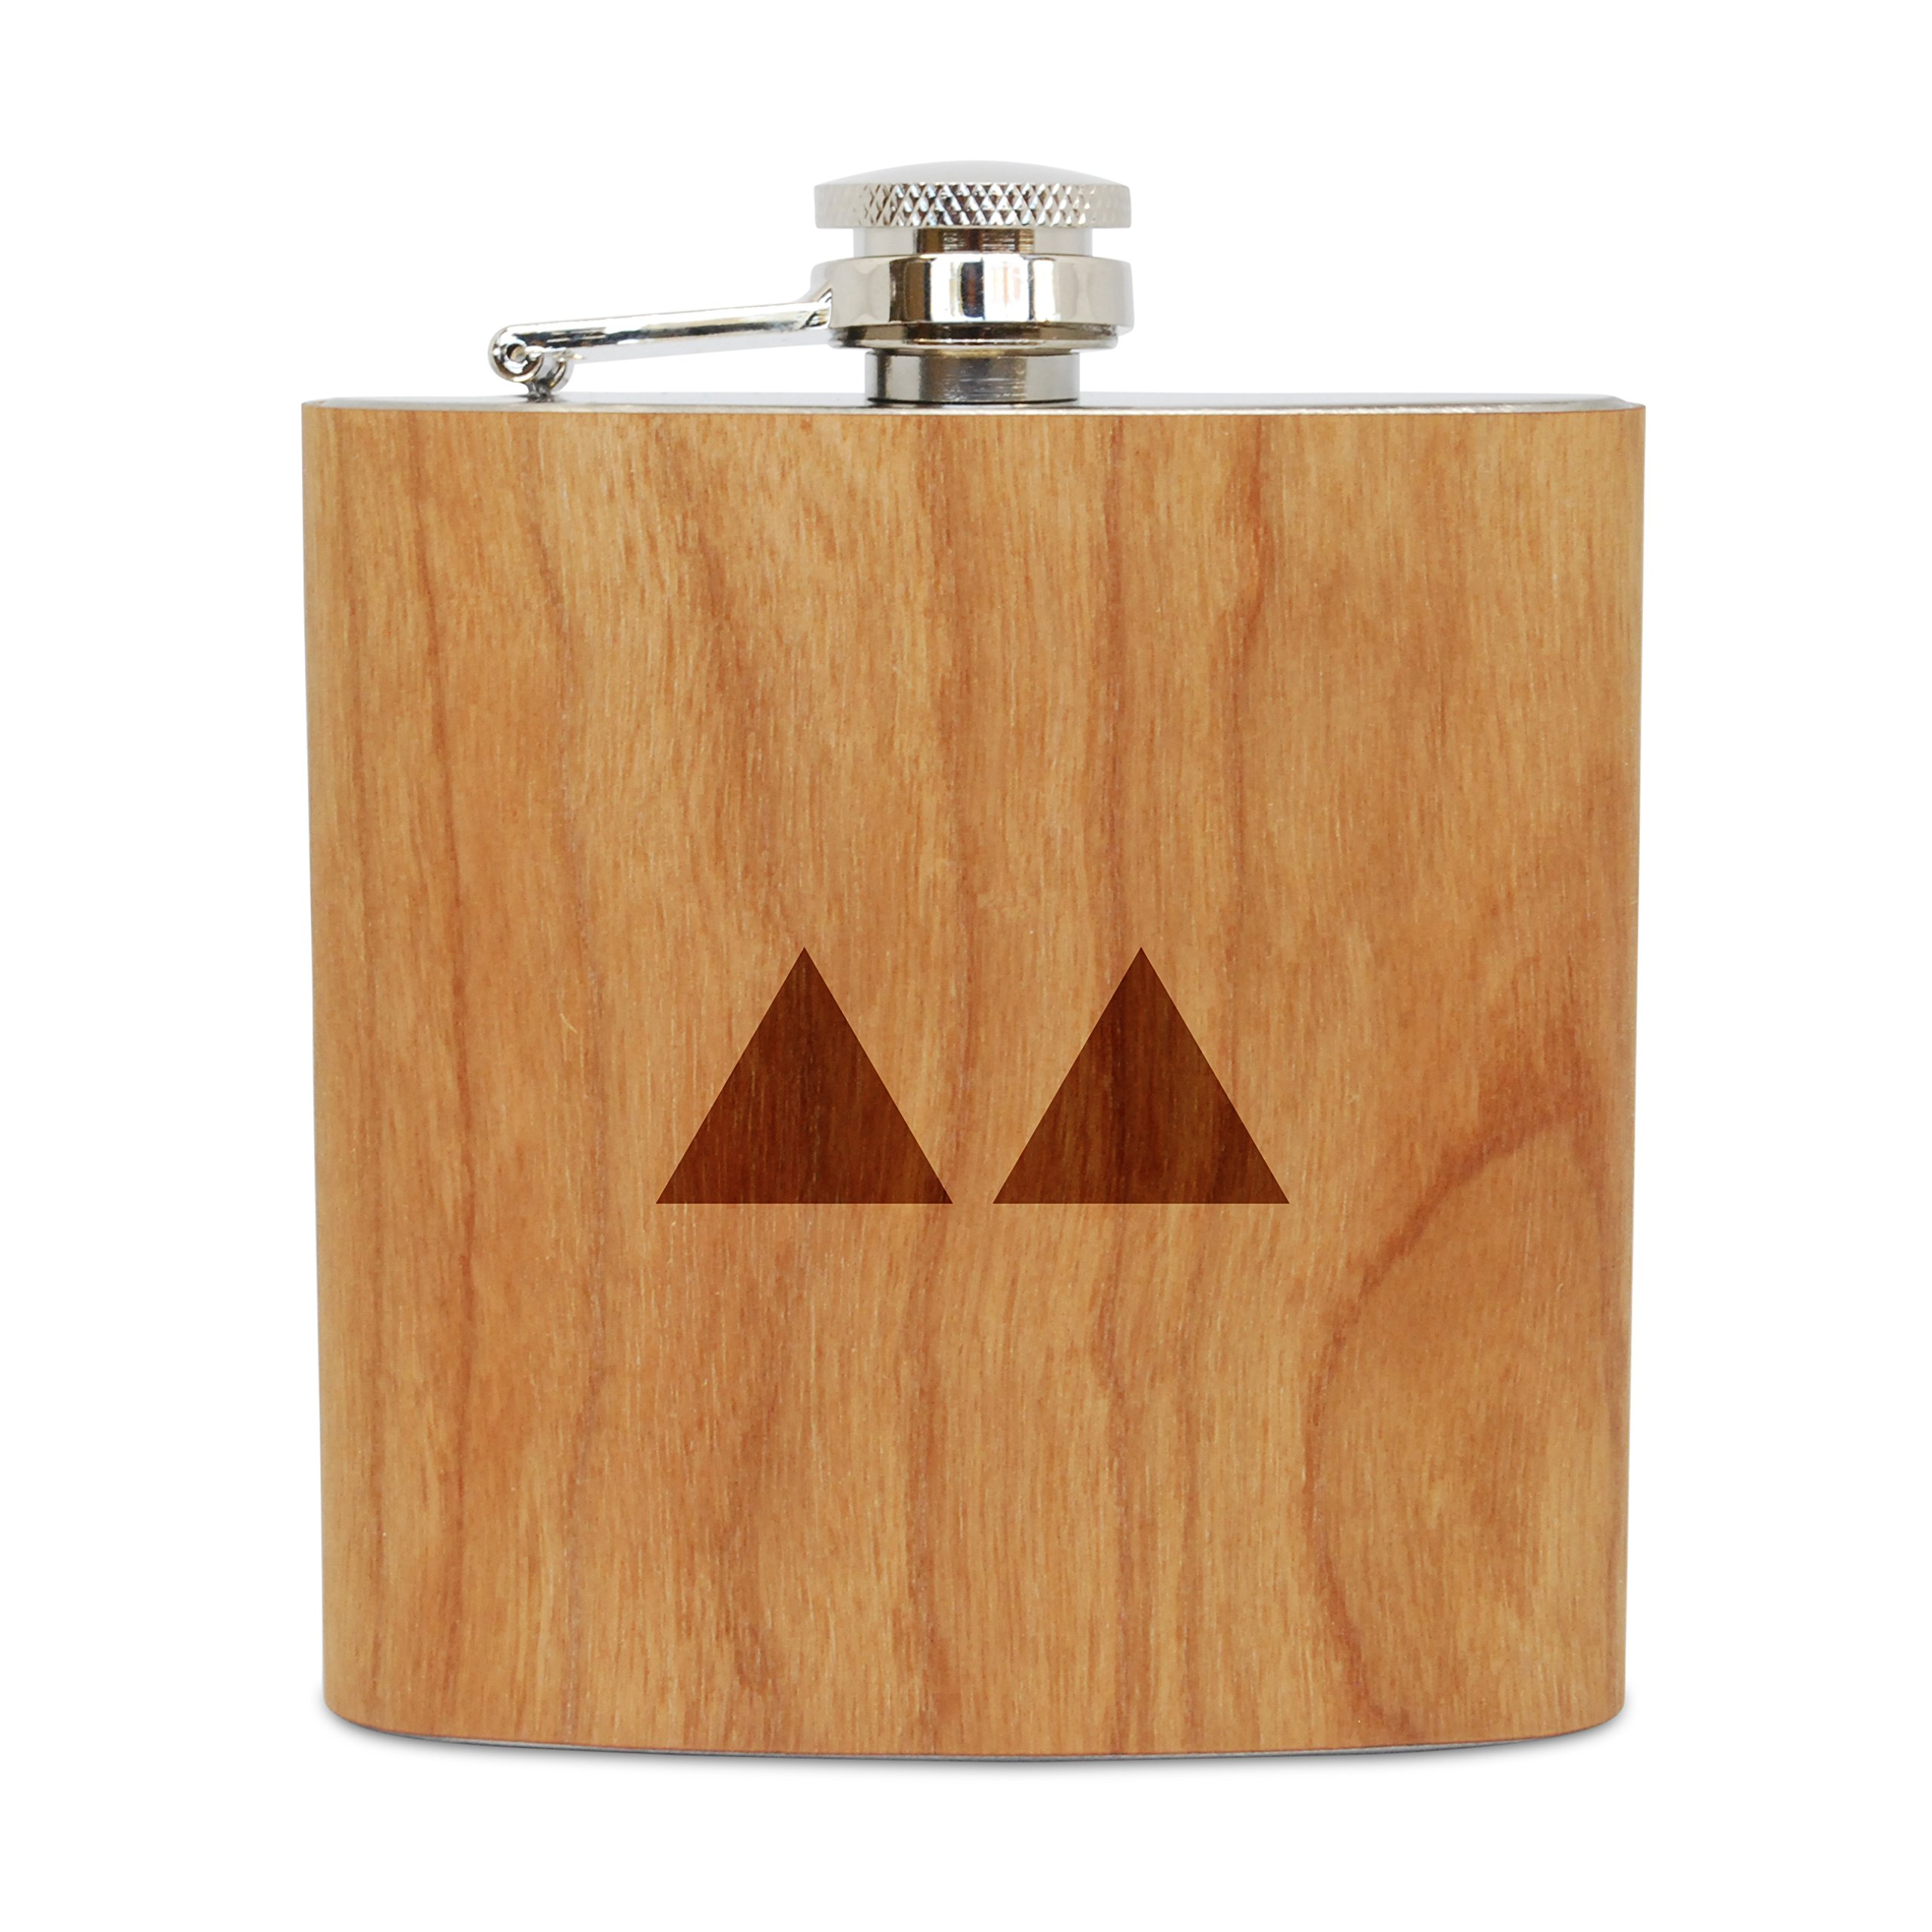 WOODEN ACCESSORIES COMPANY Cherry Wood Flask With Stainless Steel Body - Laser Engraved Flask With Twin Peaks Design - 6 Oz Wood Hip Flask Handmade In USA